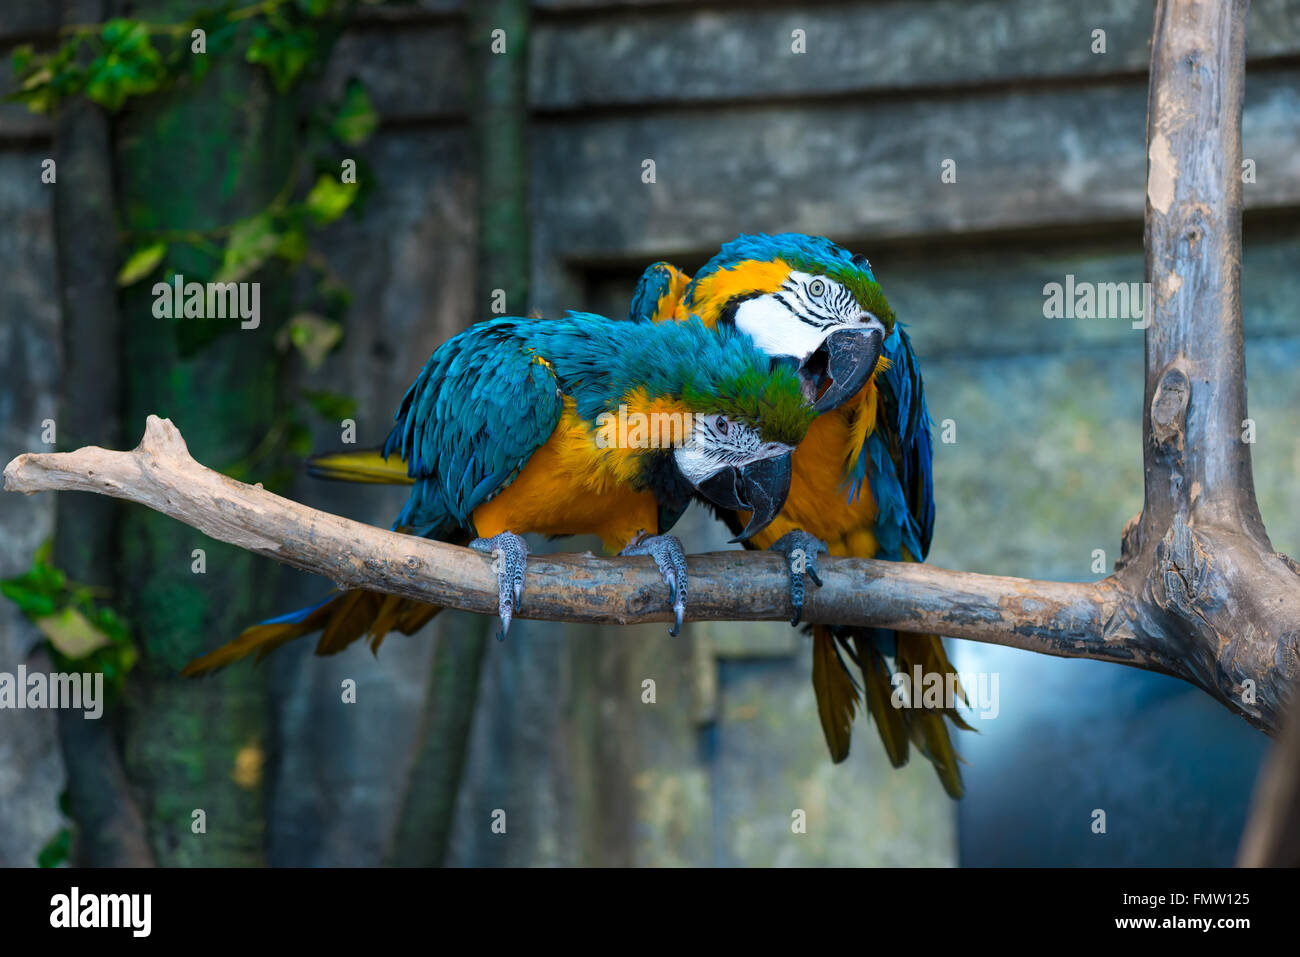 beautiful bright colors parrot on a branch close-up - Stock Image